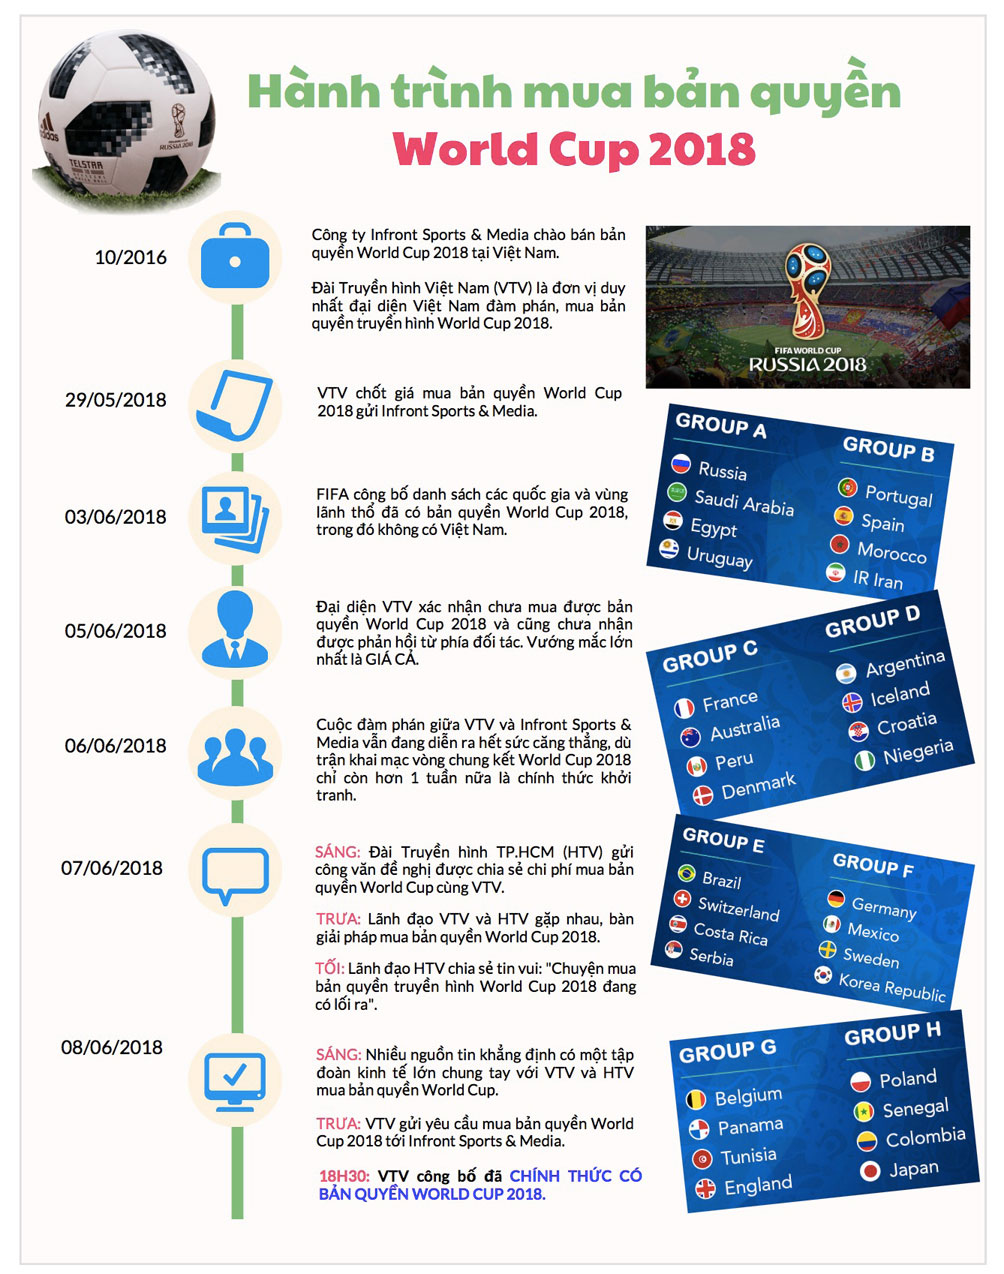 infographic: toan canh vtv mua ban quyen world cup 2018 day cang thang hinh anh 1